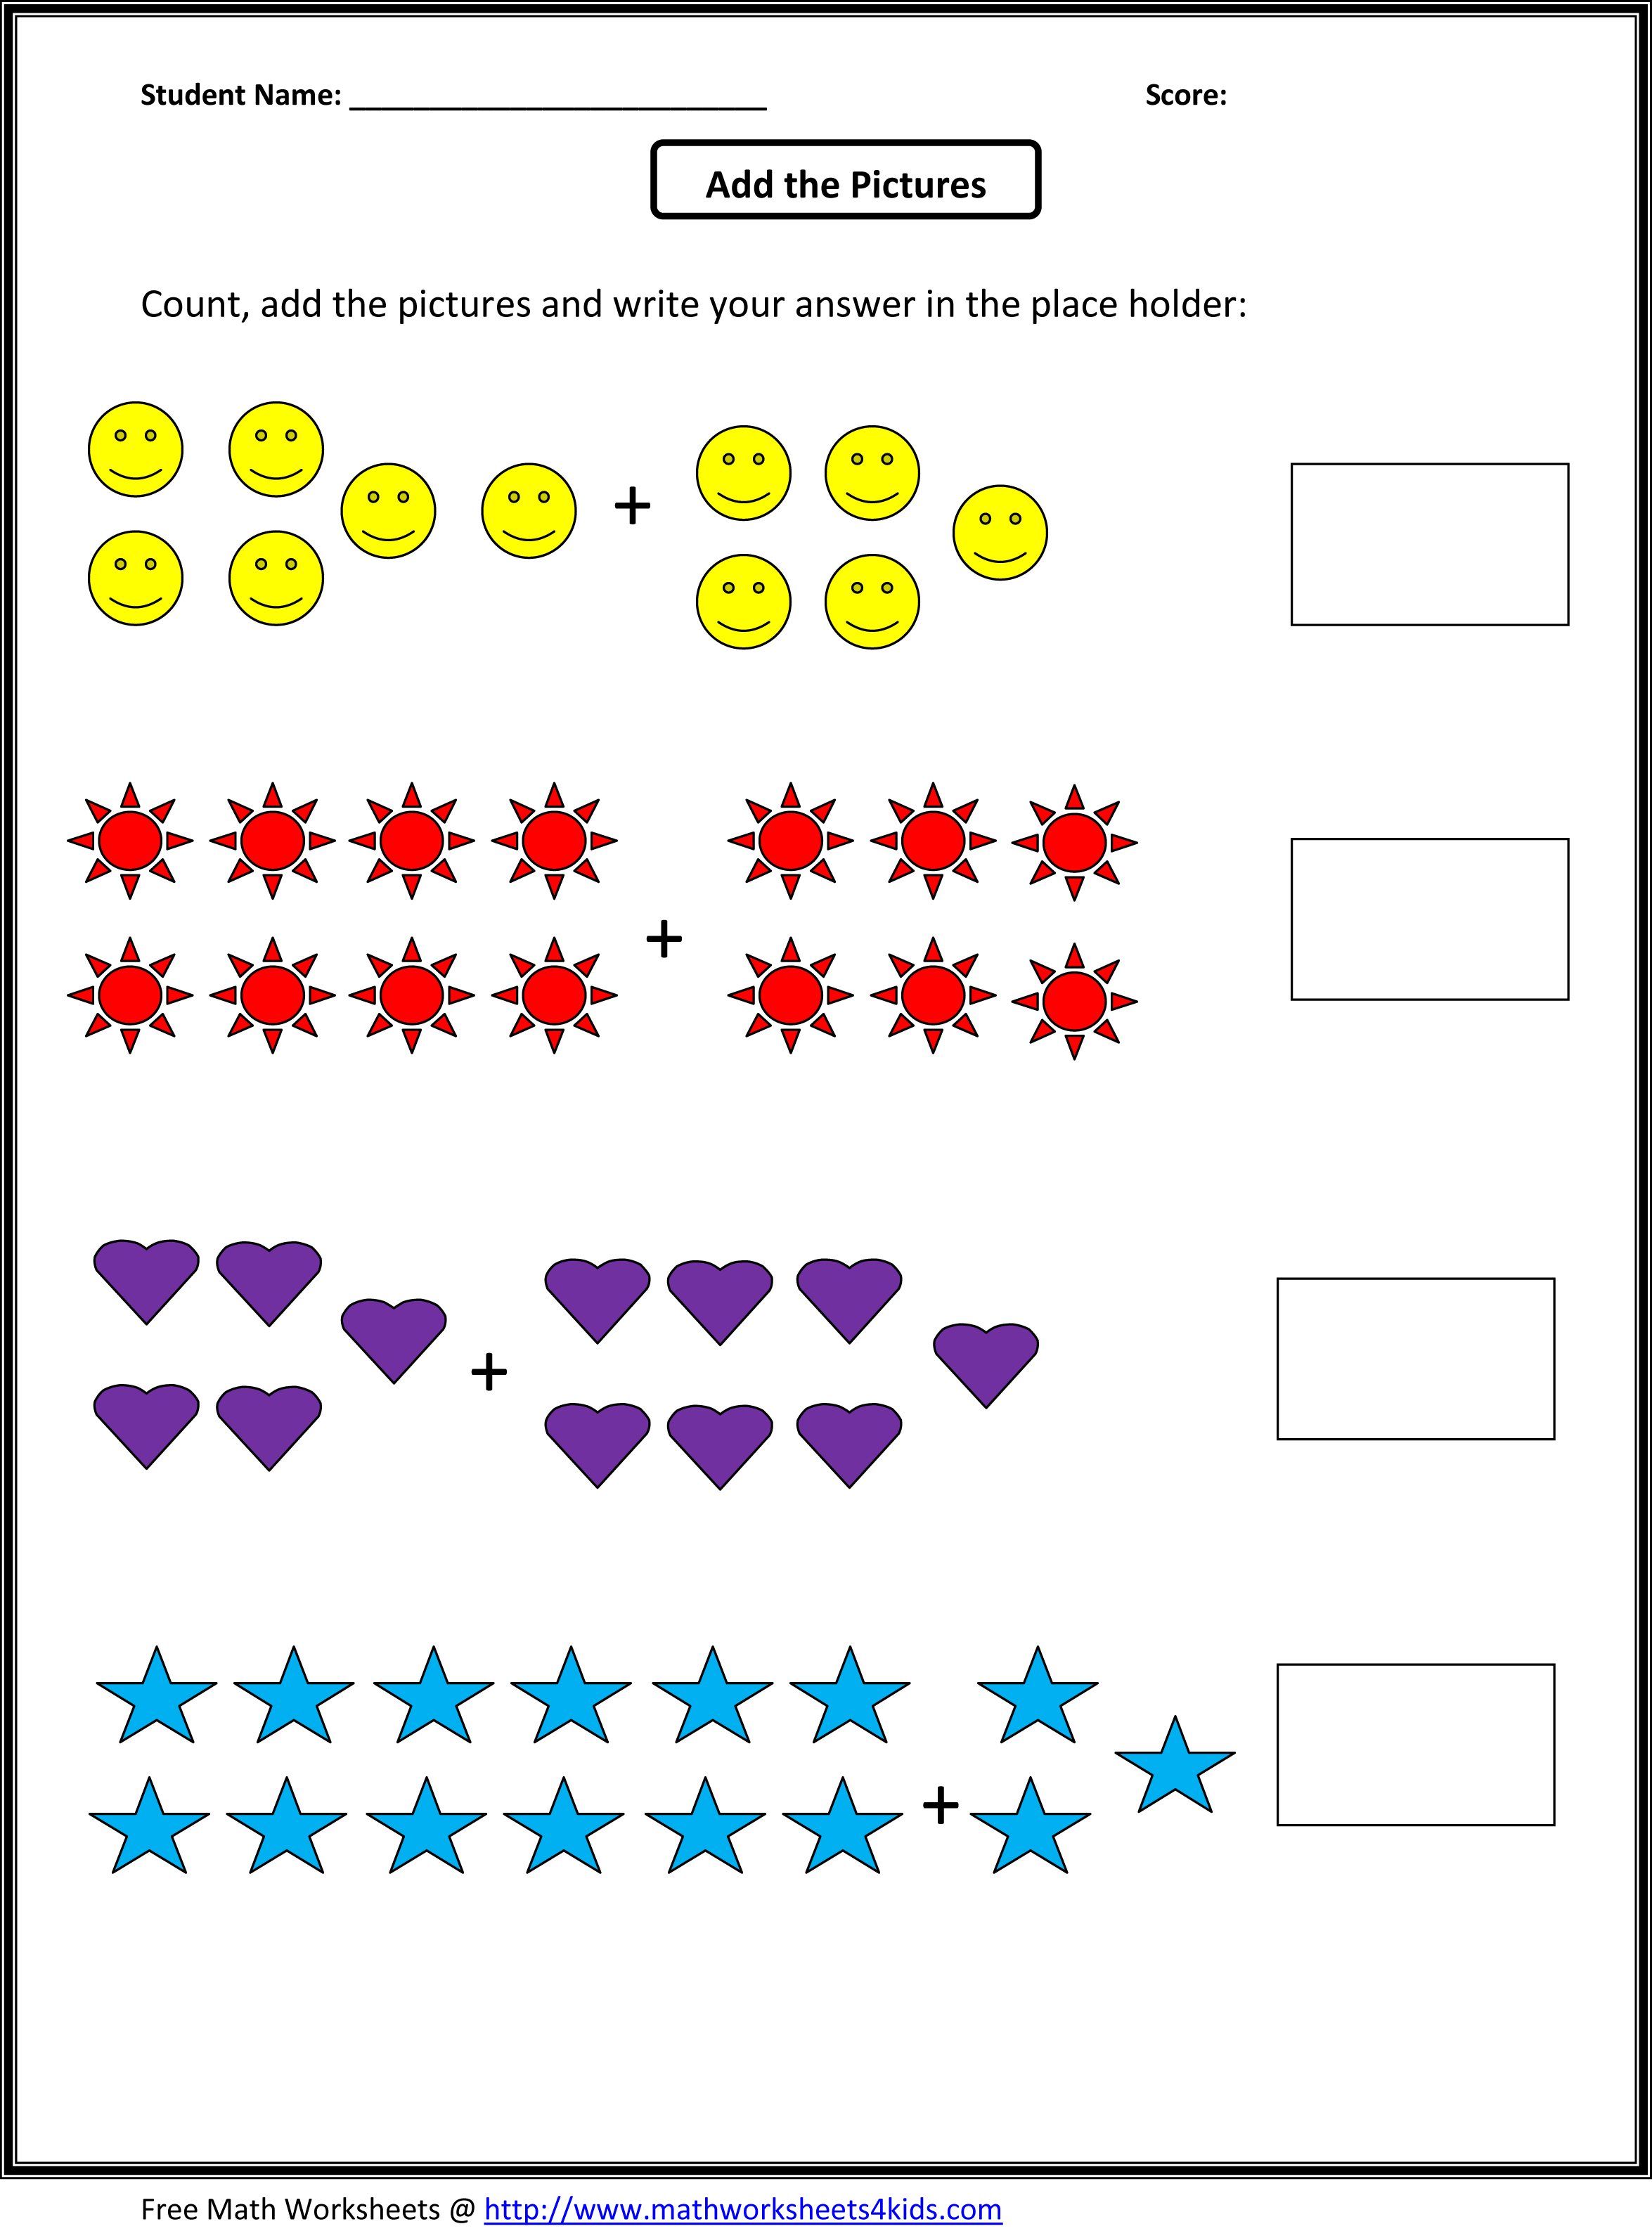 Weirdmailus  Pleasant Grade  Maths Worksheet  Reocurent With Engaging Math Worksheets For St Grade Free  Reocurent With Easy On The Eye  Step Word Problems Worksheet Also System Of Equation Substitution Worksheet In Addition Punctuation Worksheets For First Grade And Percent Concentration Worksheet As Well As Pythagoras Worksheet Additionally Reflection On Coordinate Plane Worksheet From Reocurentcom With Weirdmailus  Engaging Grade  Maths Worksheet  Reocurent With Easy On The Eye Math Worksheets For St Grade Free  Reocurent And Pleasant  Step Word Problems Worksheet Also System Of Equation Substitution Worksheet In Addition Punctuation Worksheets For First Grade From Reocurentcom